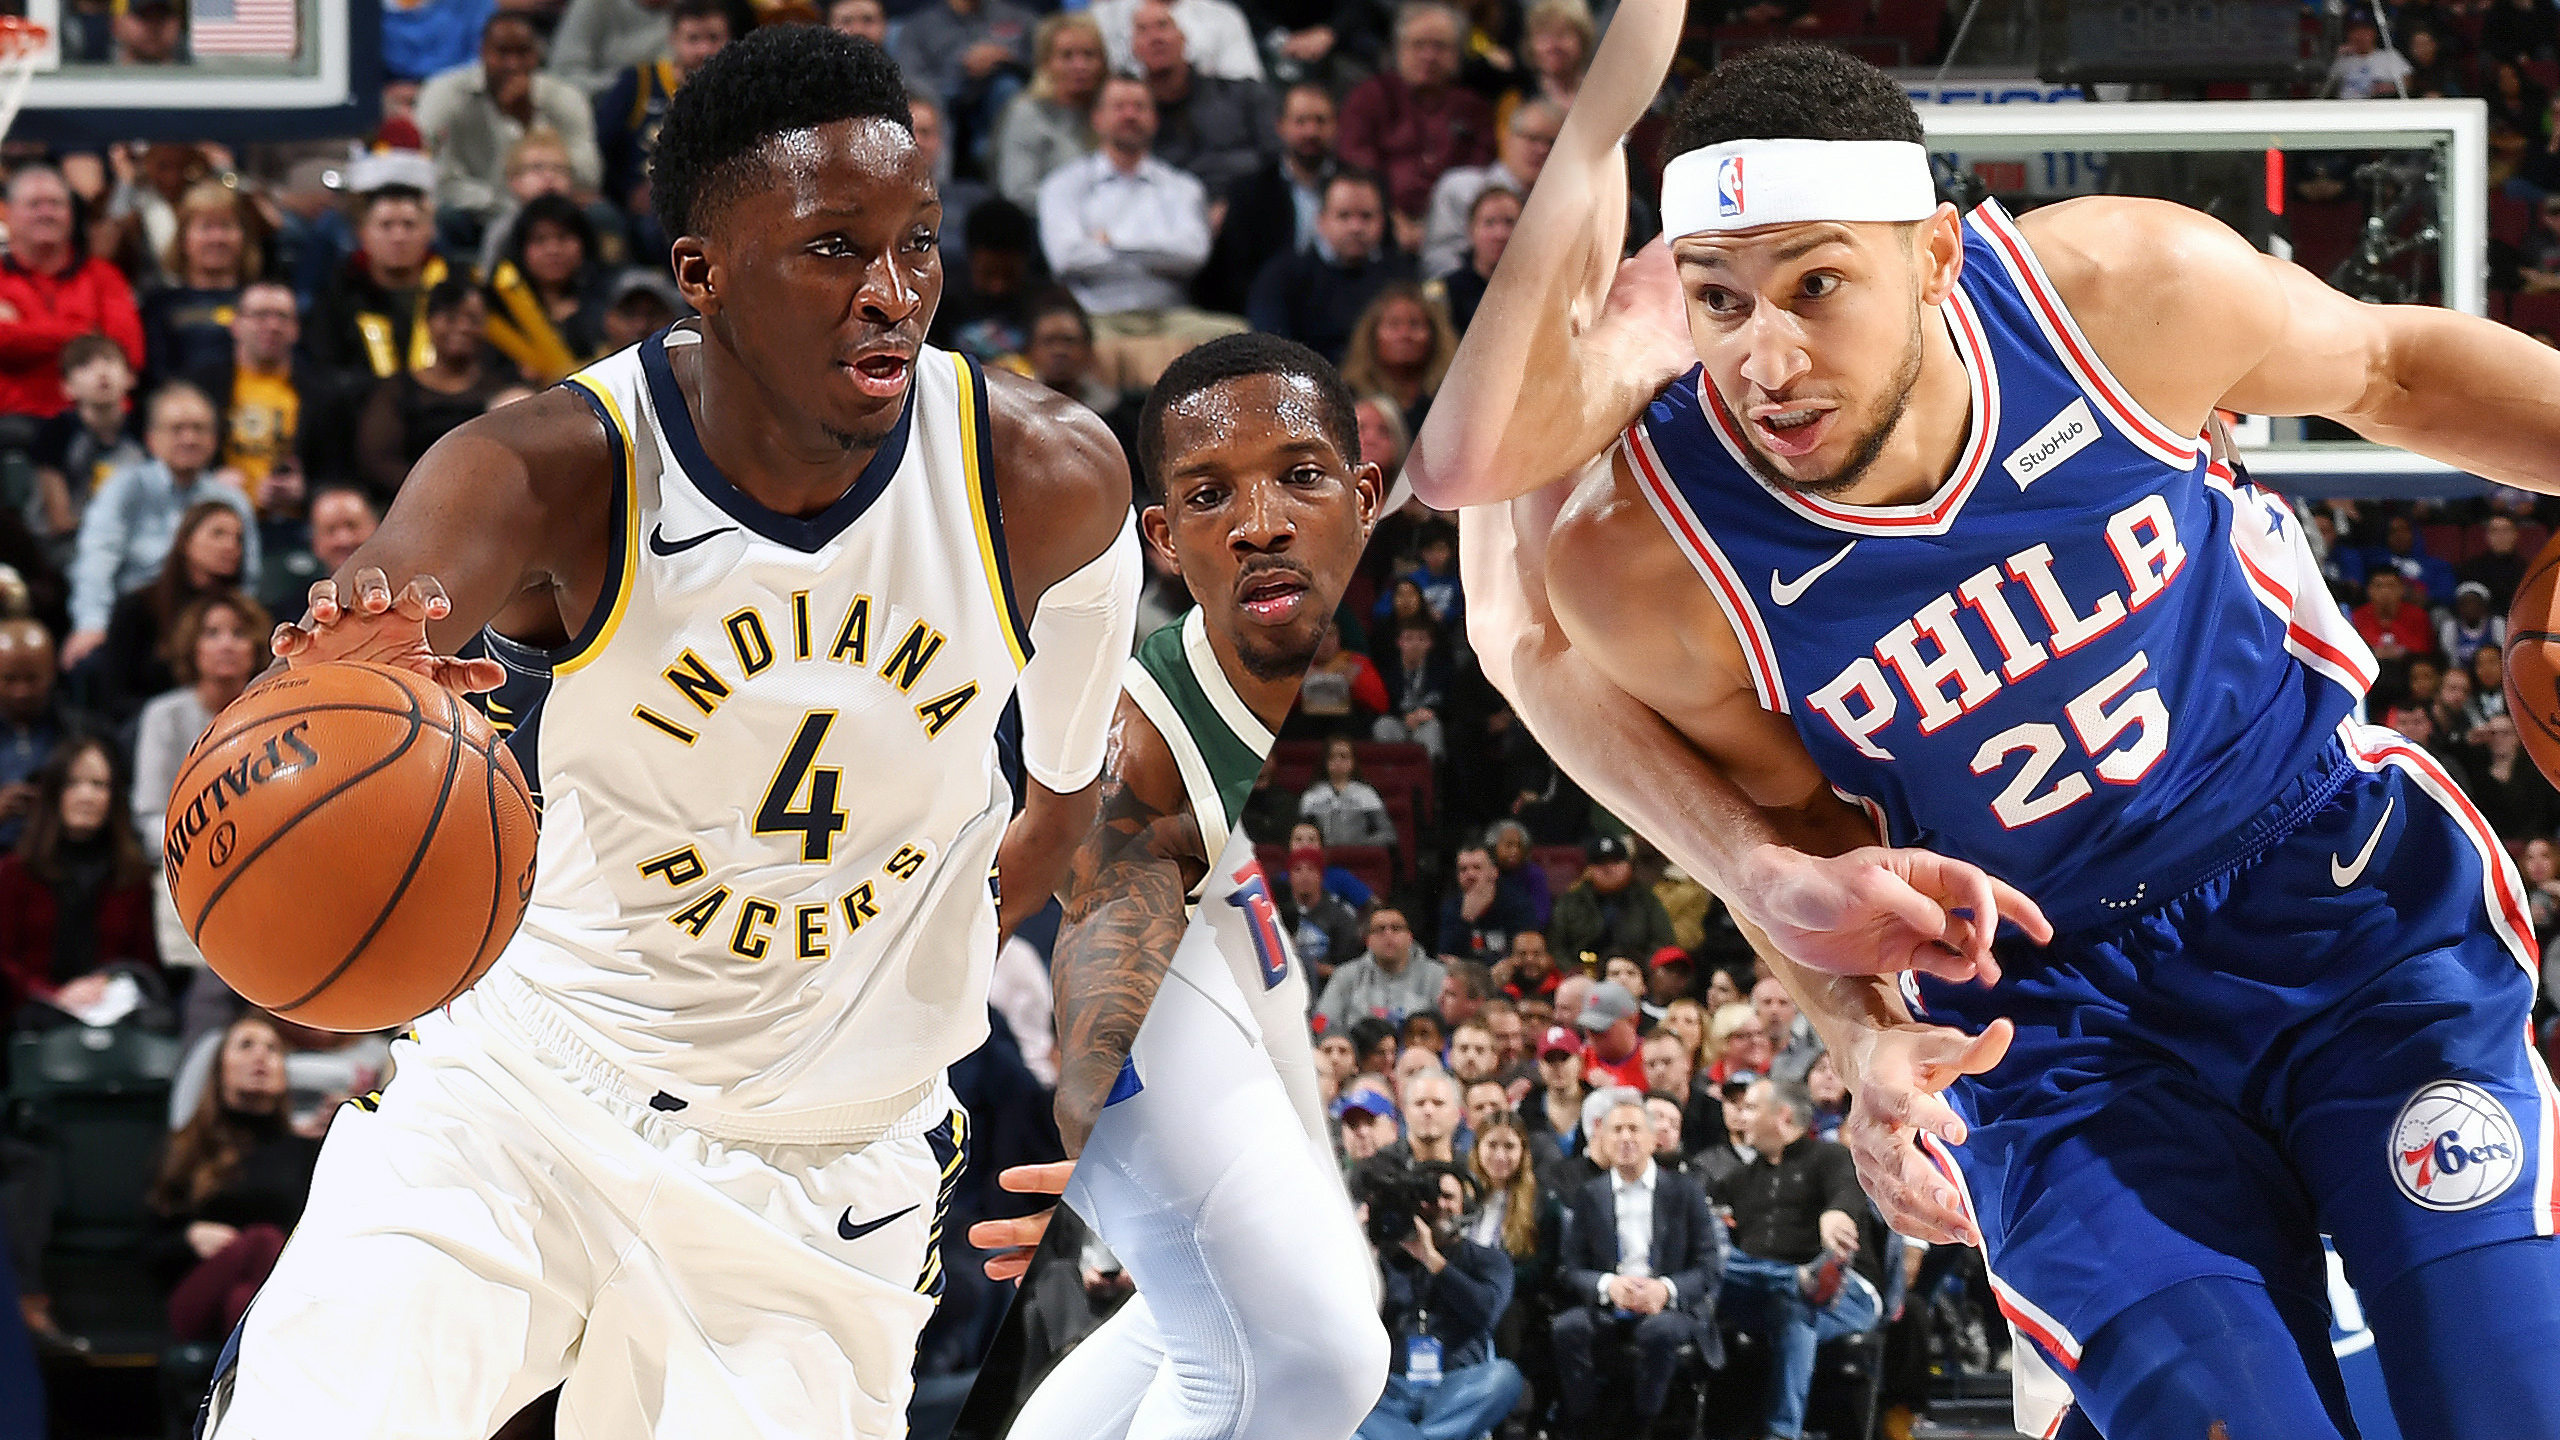 Indiana Pacers vs. Philadelphia 76ers (re-air)